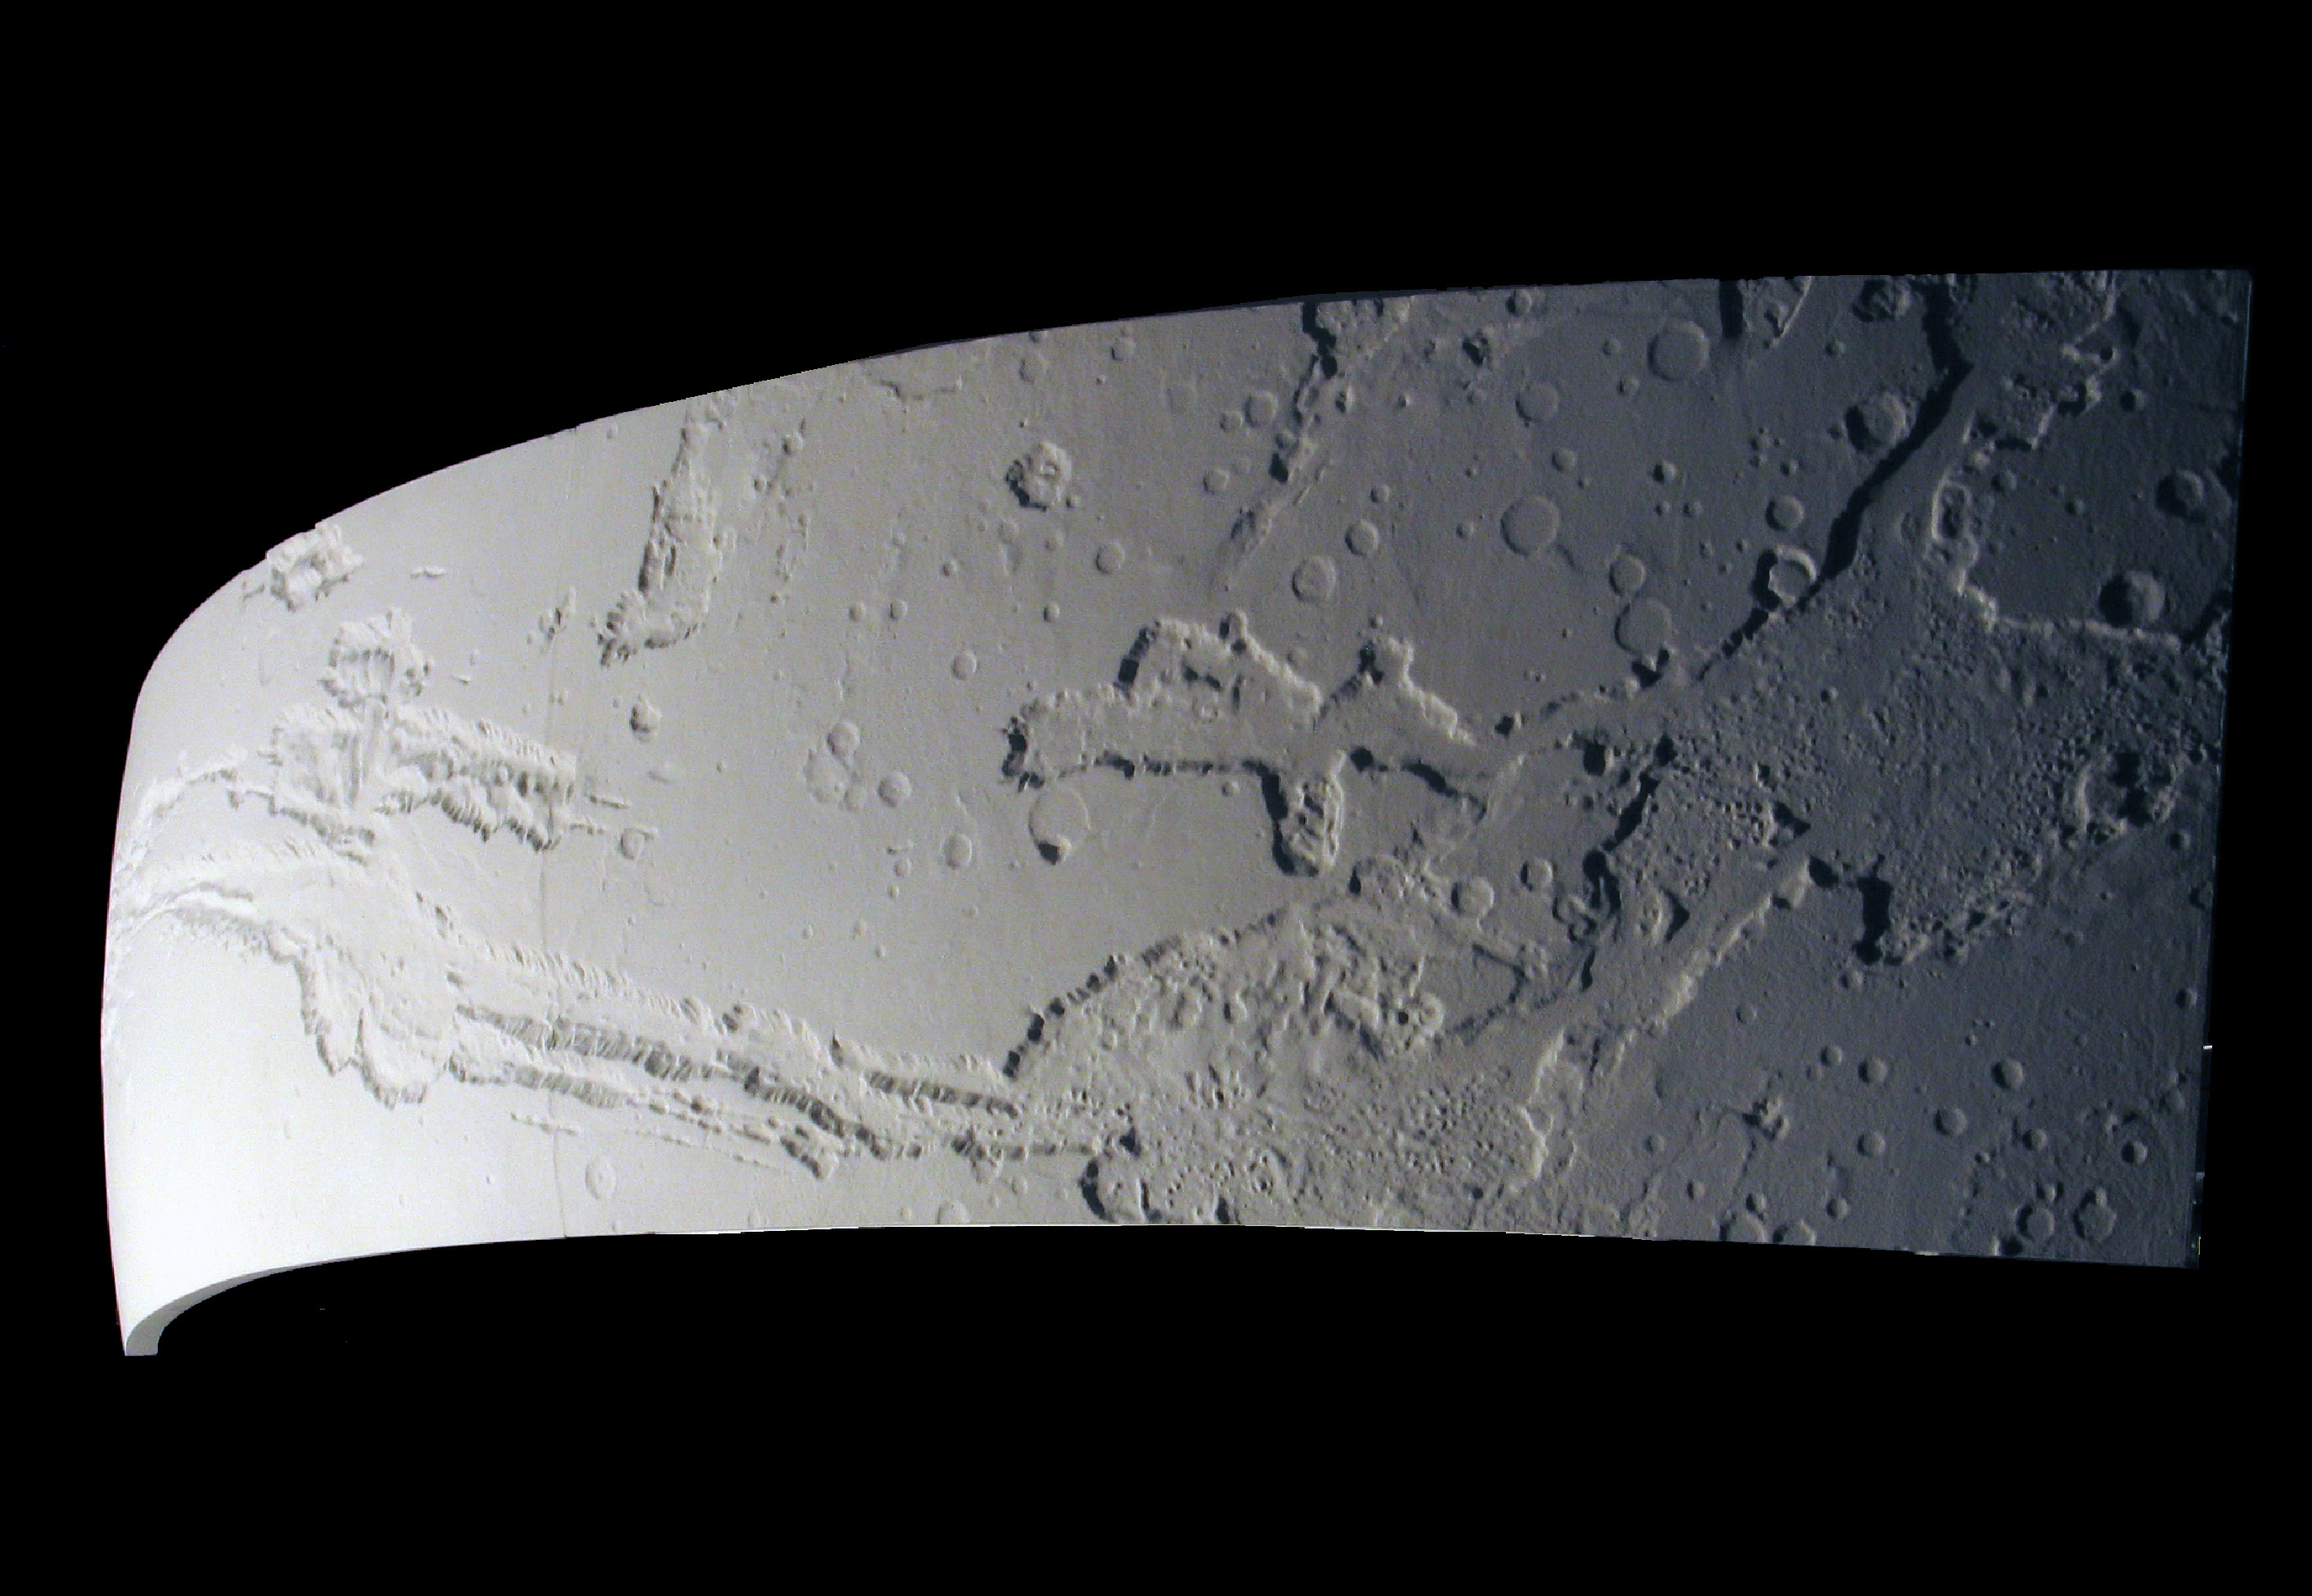 Curved, CNC milled, painted, high density foam model of Valles Marineris, Mars